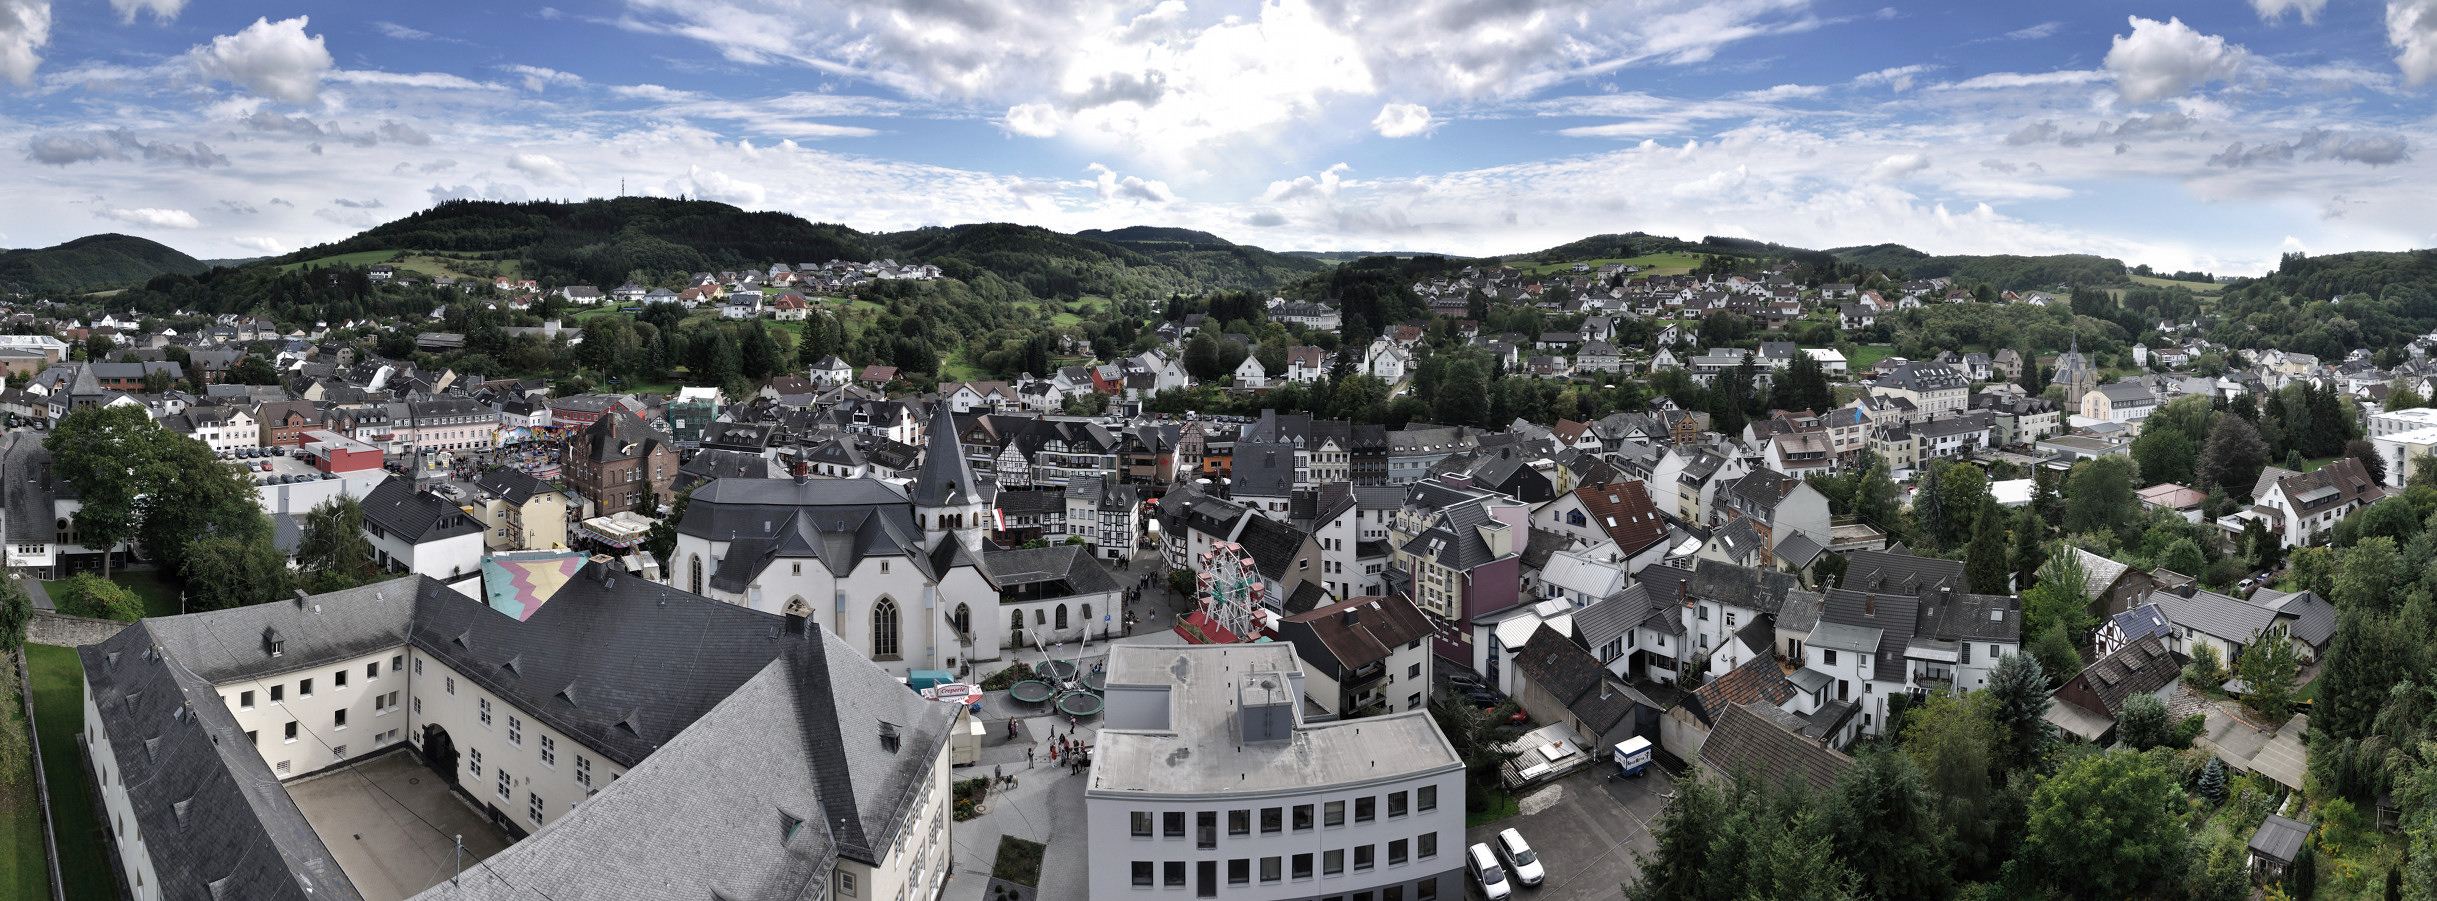 Stadtpanorama (Foto: Chris Körtgen)